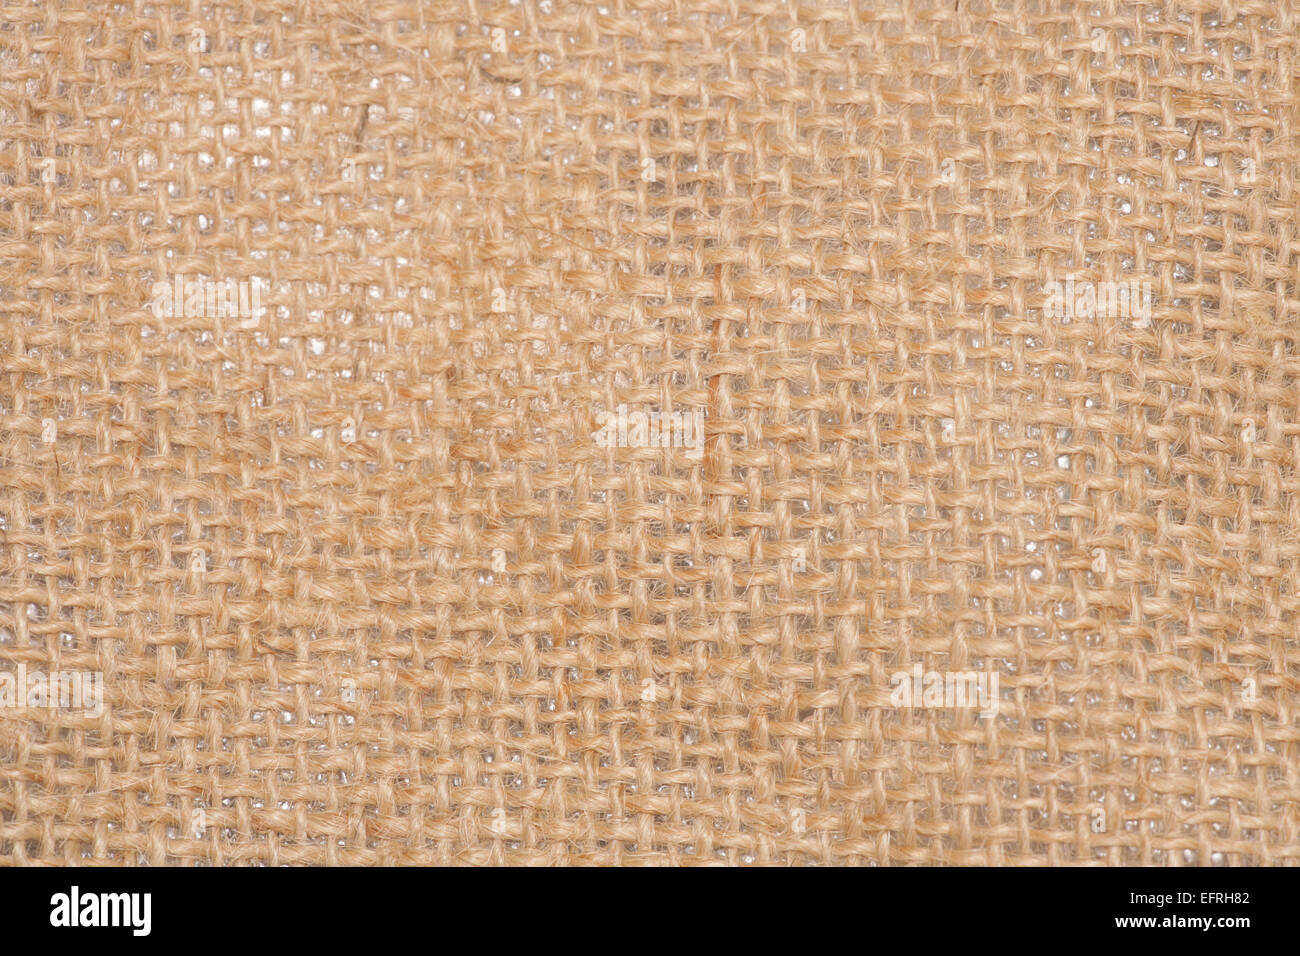 hessian fabric abstract background texture - Stock Image